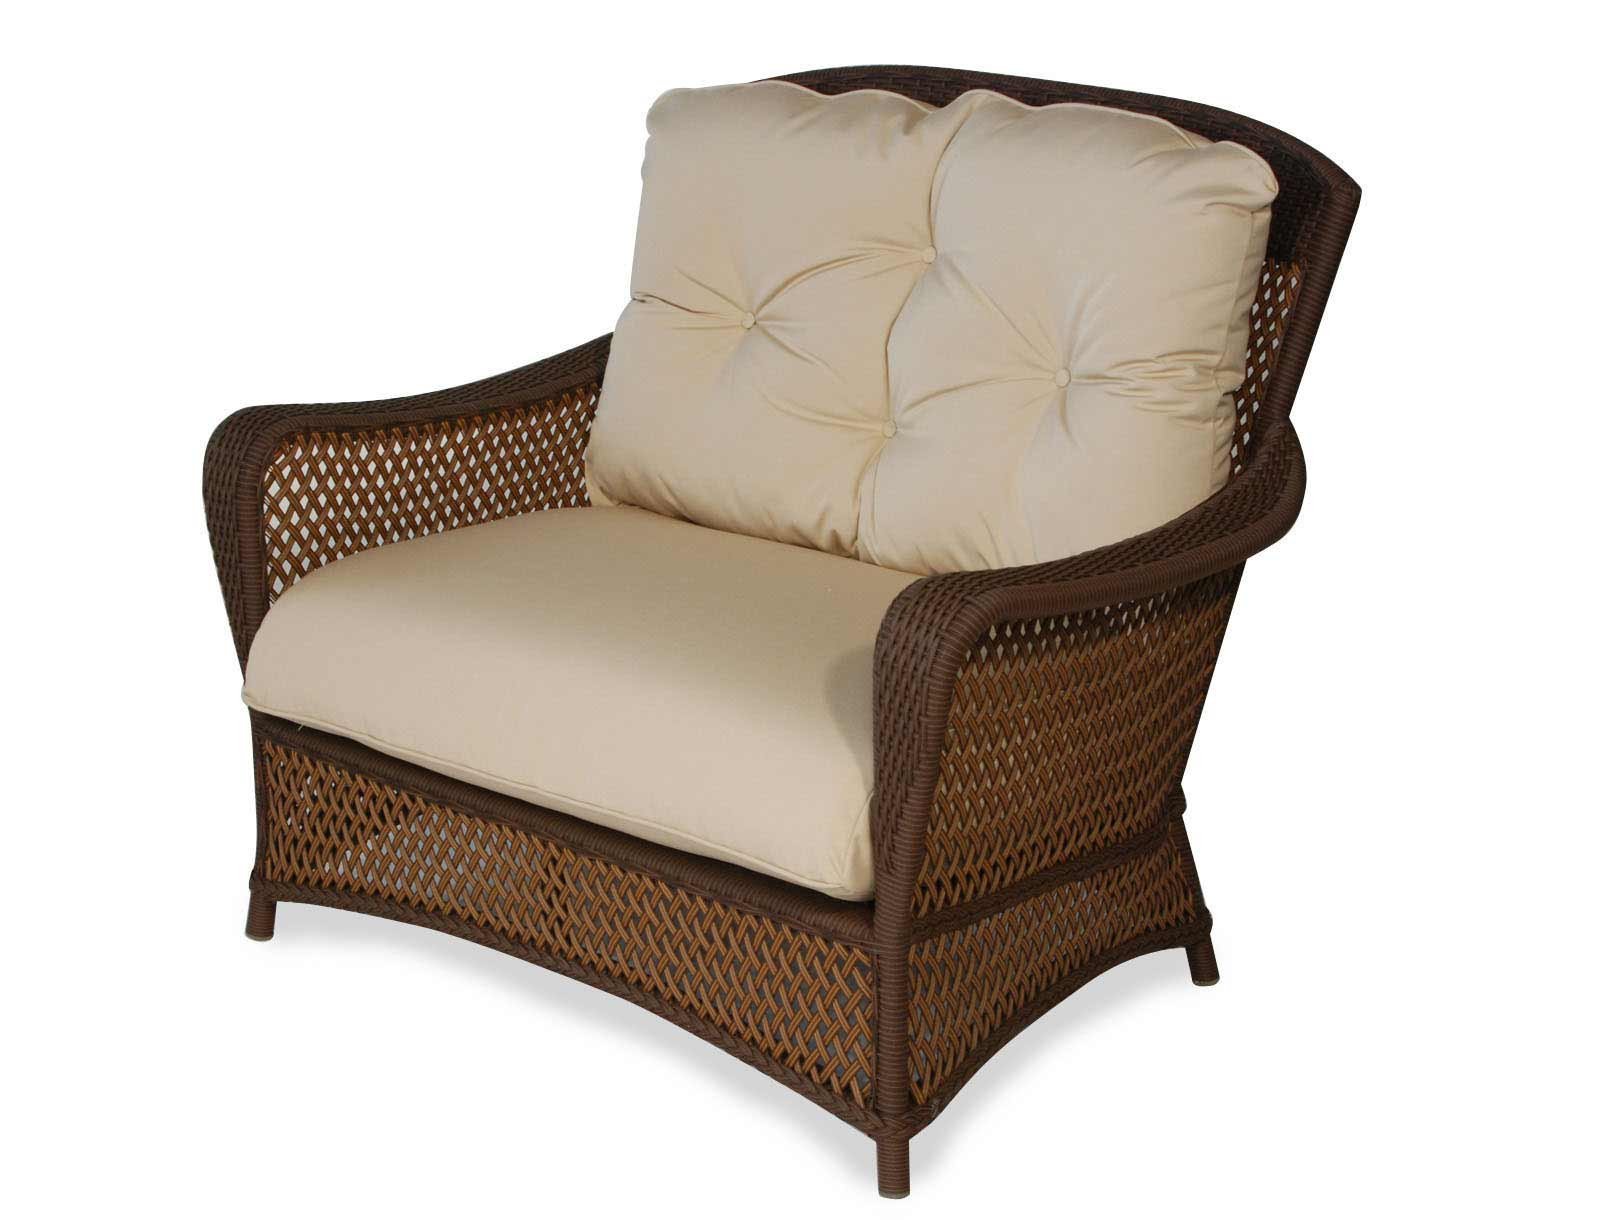 Image of: Large Wicker Patio Chair